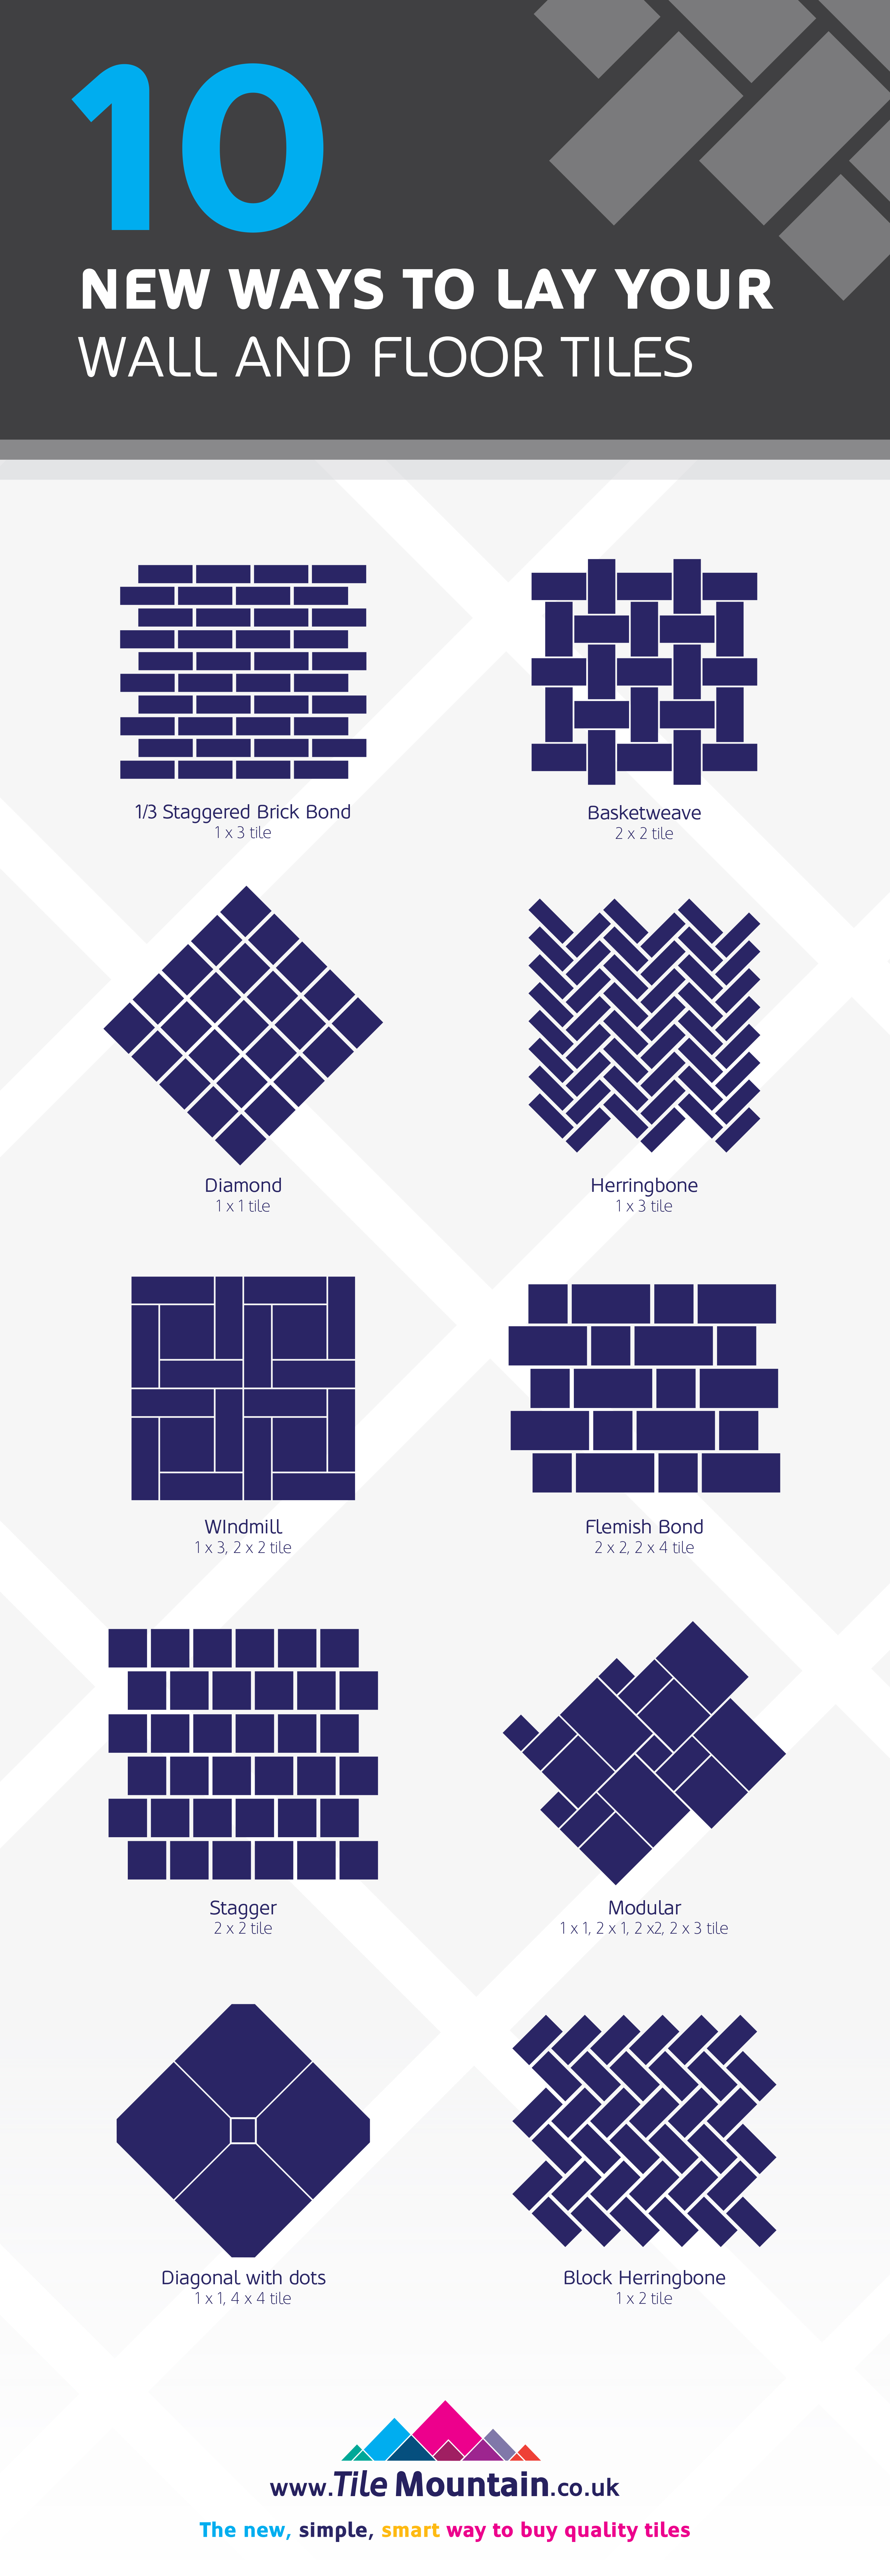 New Ways To Lay Wall Tiles And Floor Tiles Tile Mountain - How to lay a diamond pattern tile floor